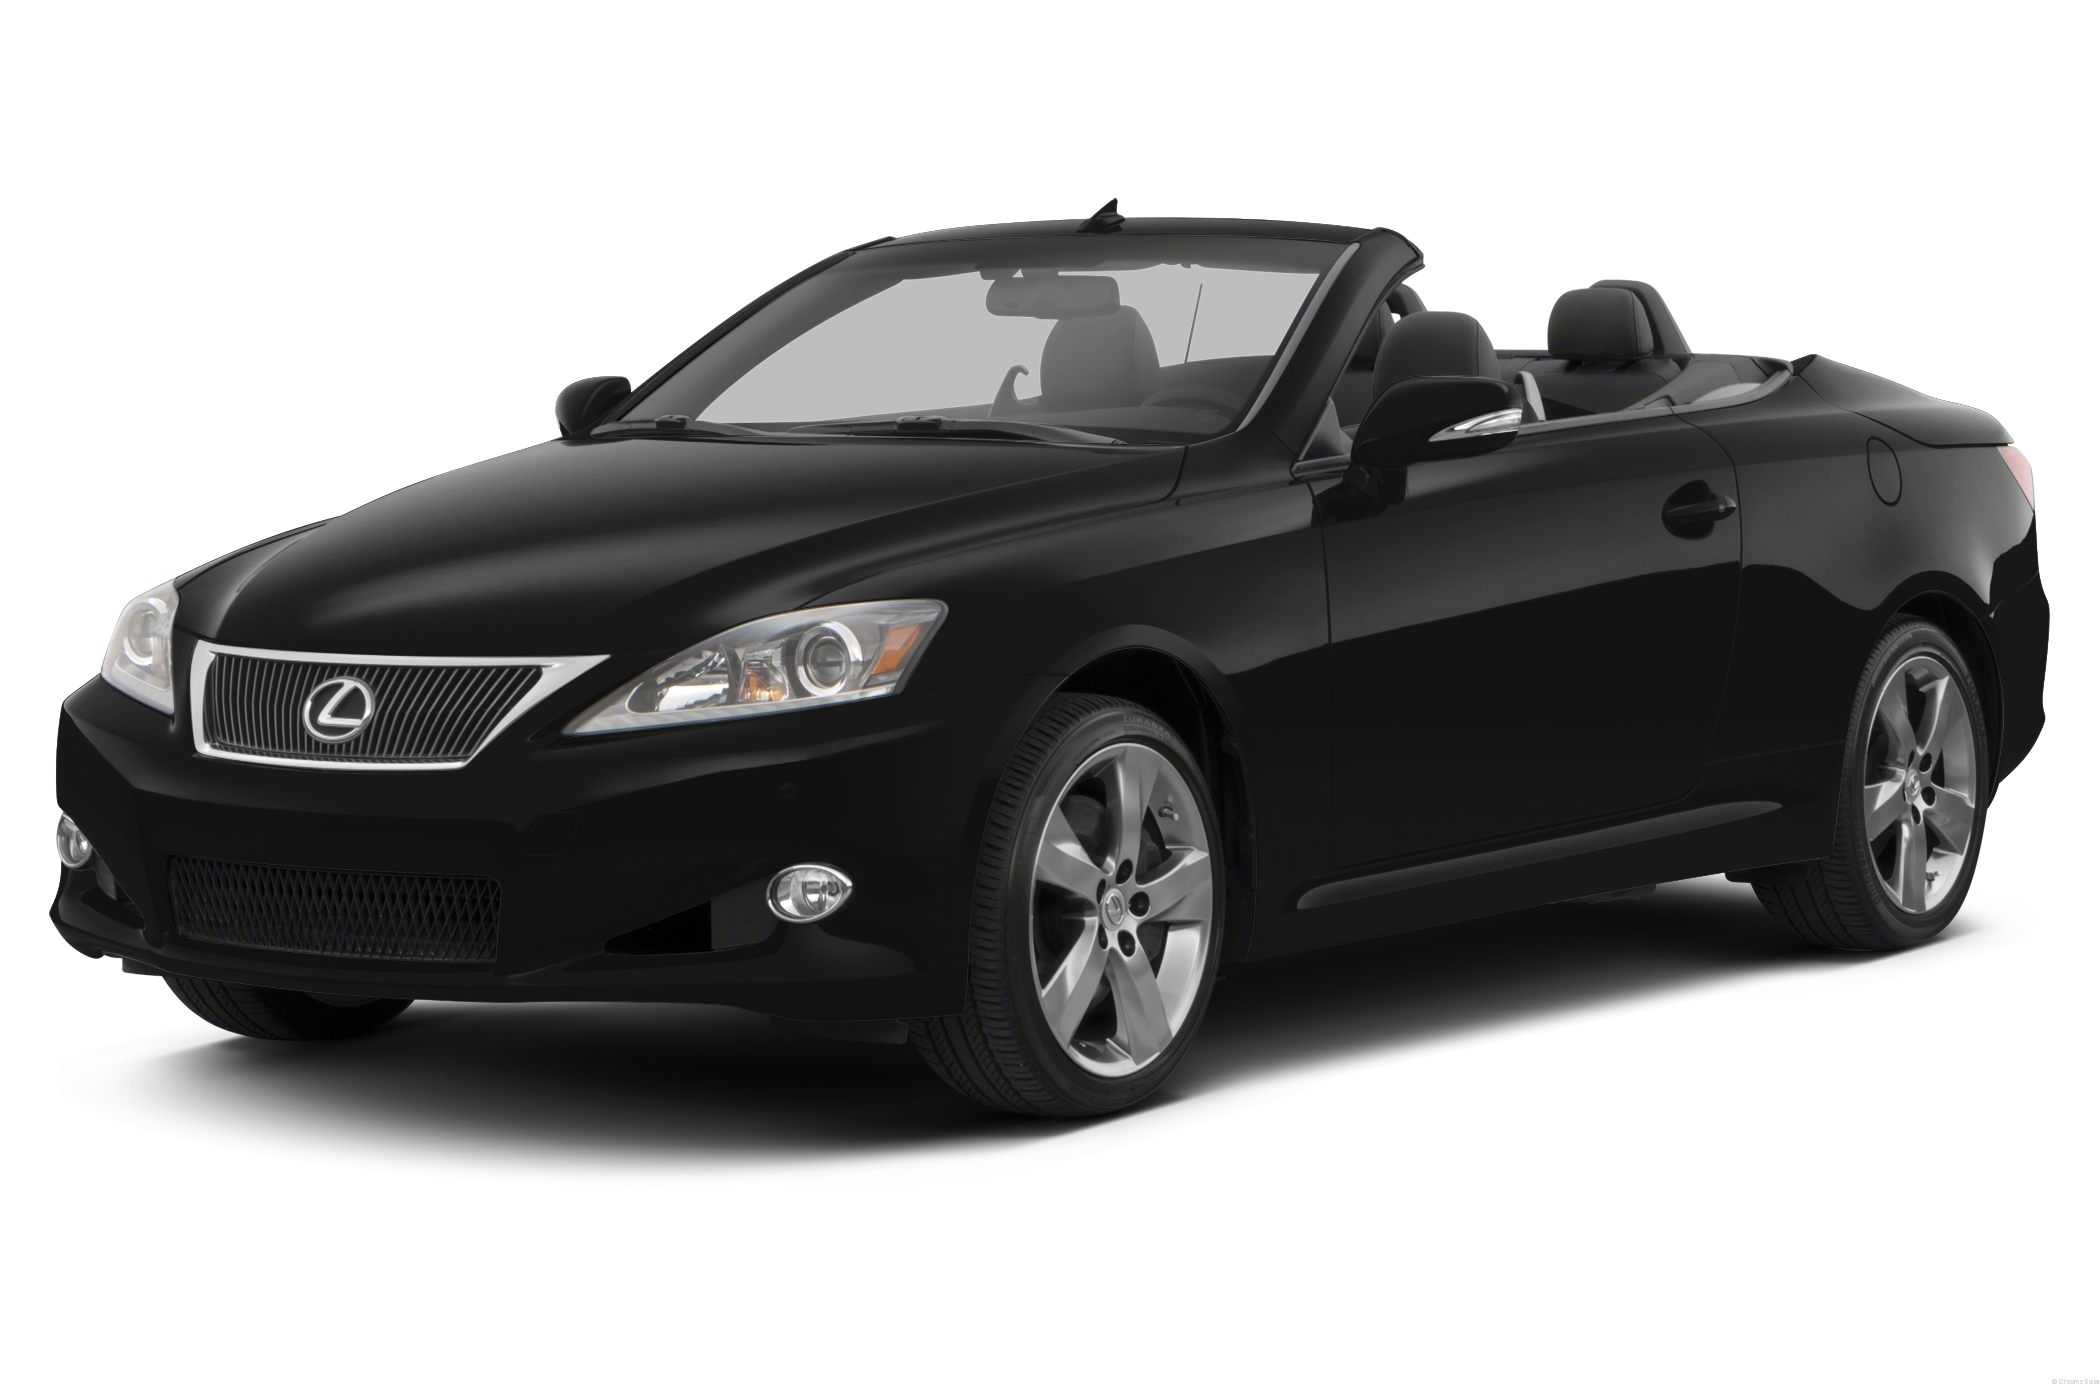 2013 Lexus IS 350 Convertible Demanding Attention at Every Curve